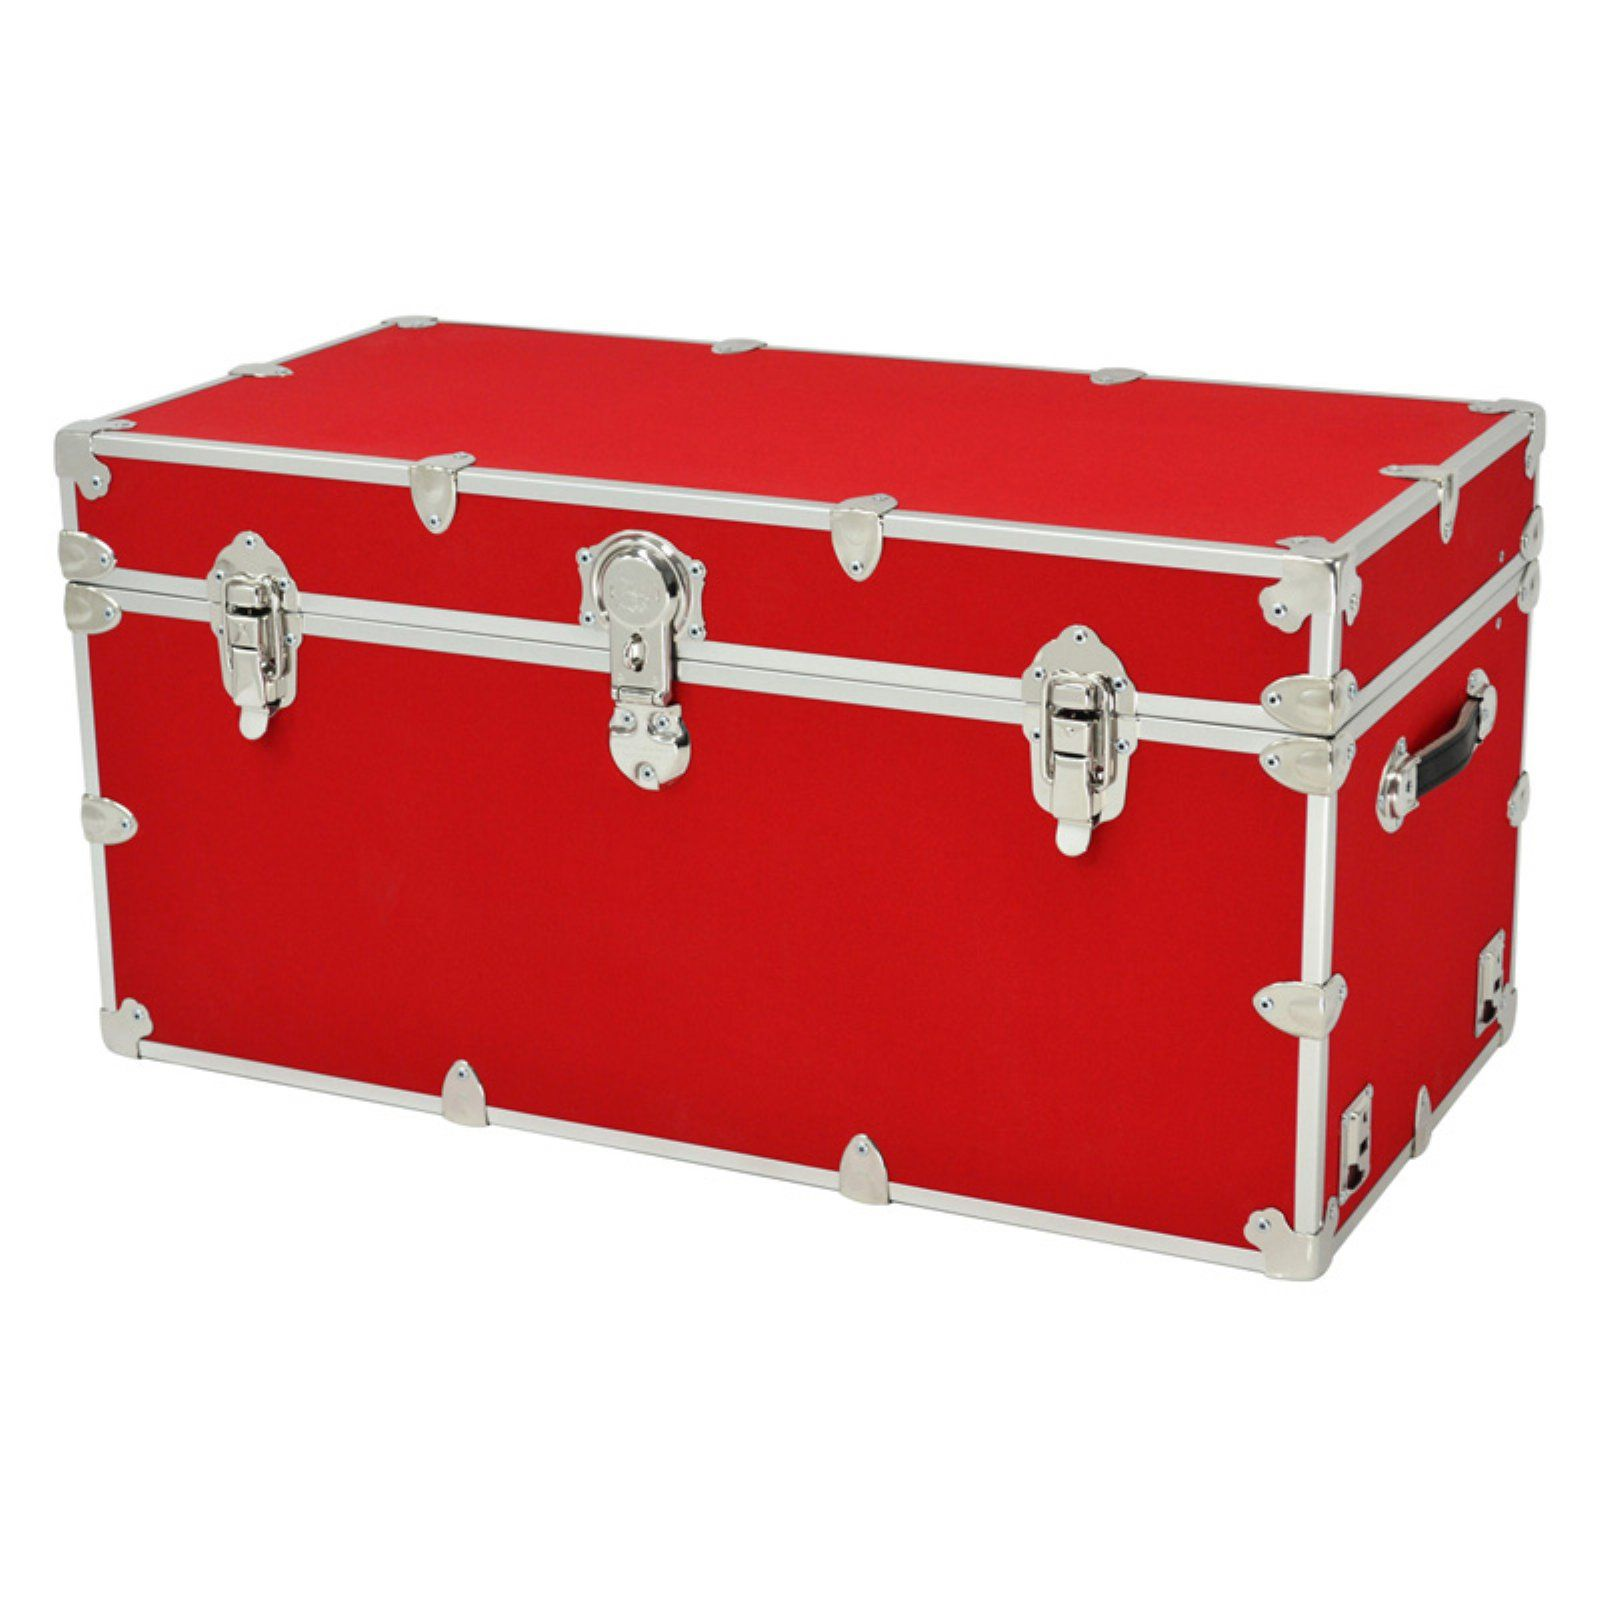 Rhino Trunk And Case Armor Trunk Double Extra Large Red